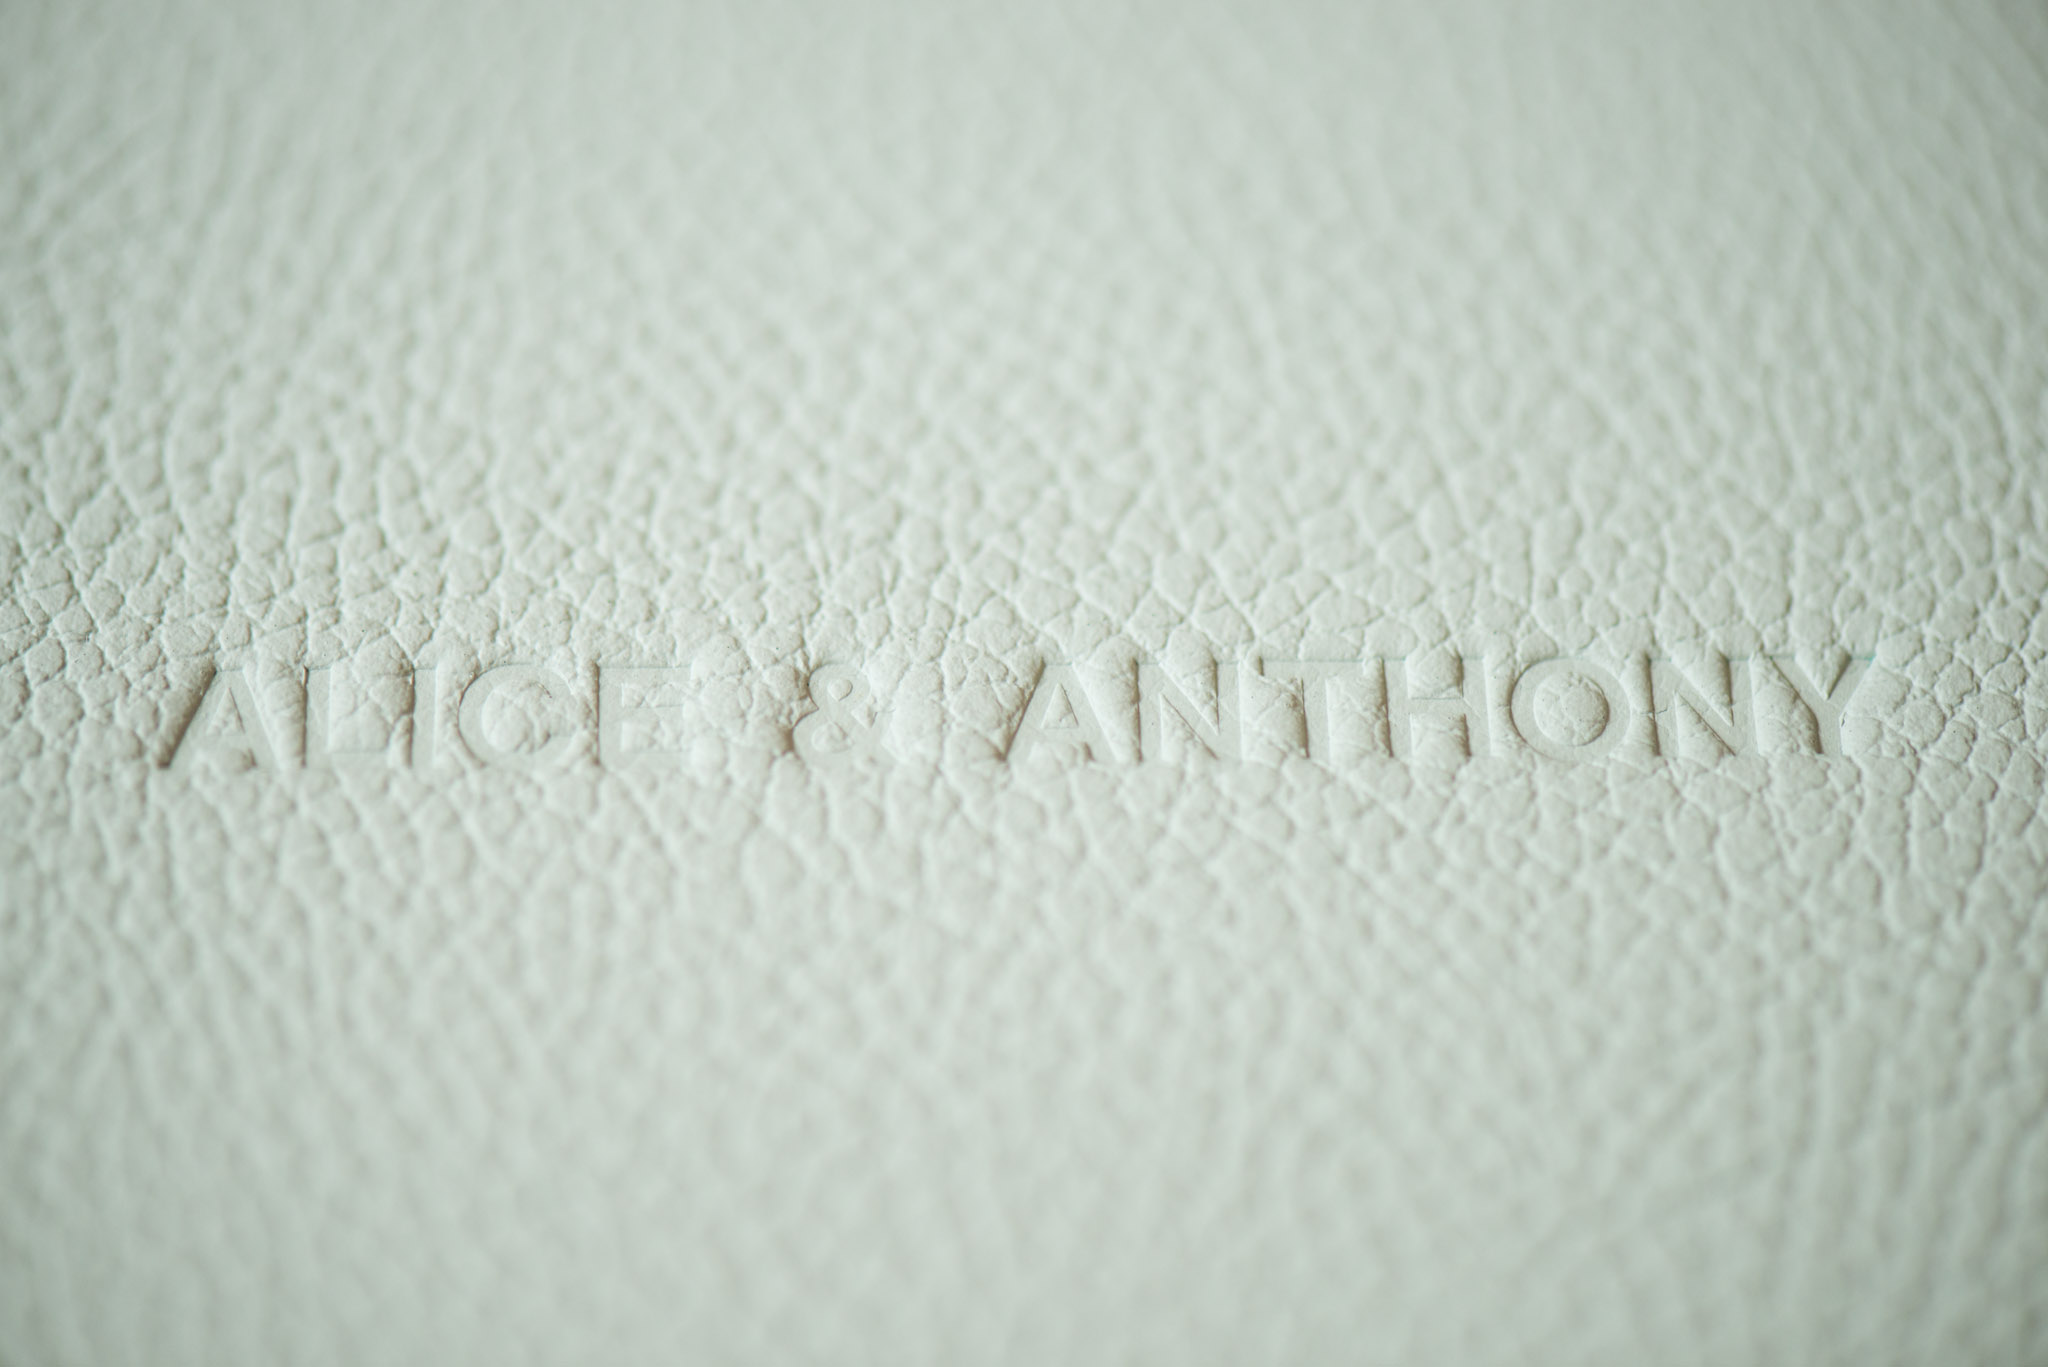 Ebossed names on fine art leather album